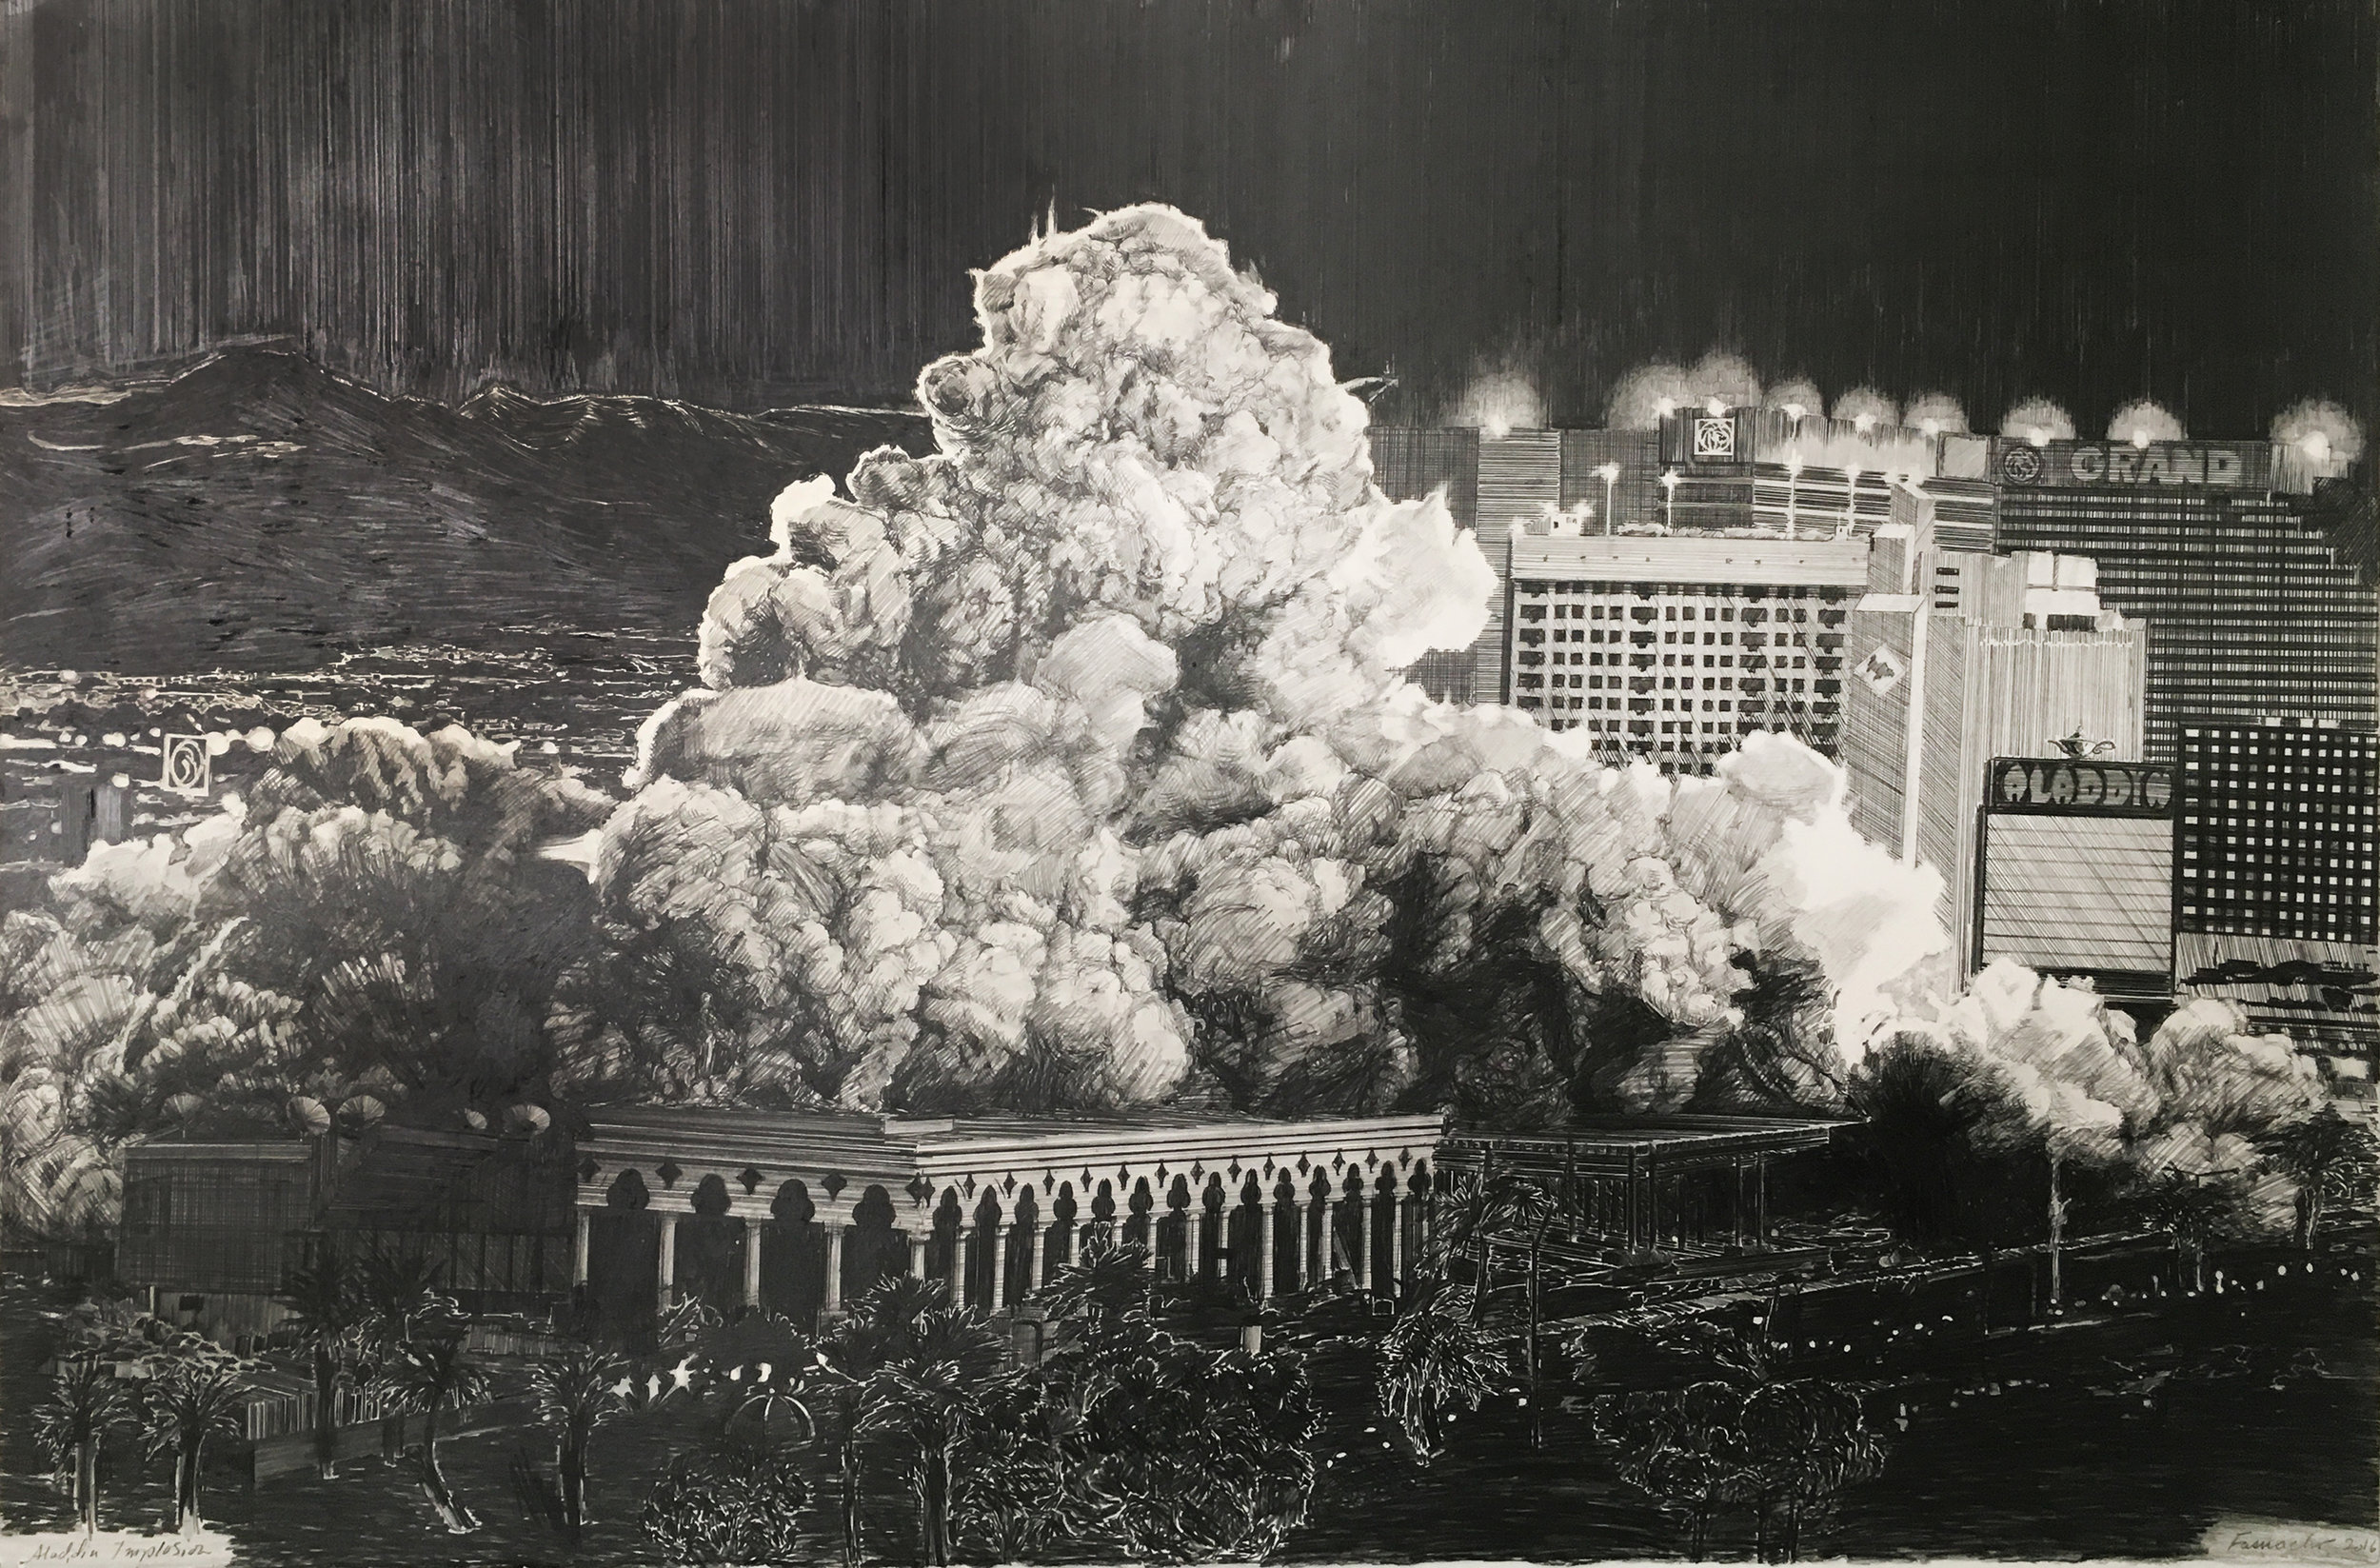 Aladdin Demolition, Las Vegas, 2016, Graphite on paper, 40 x 60 inches